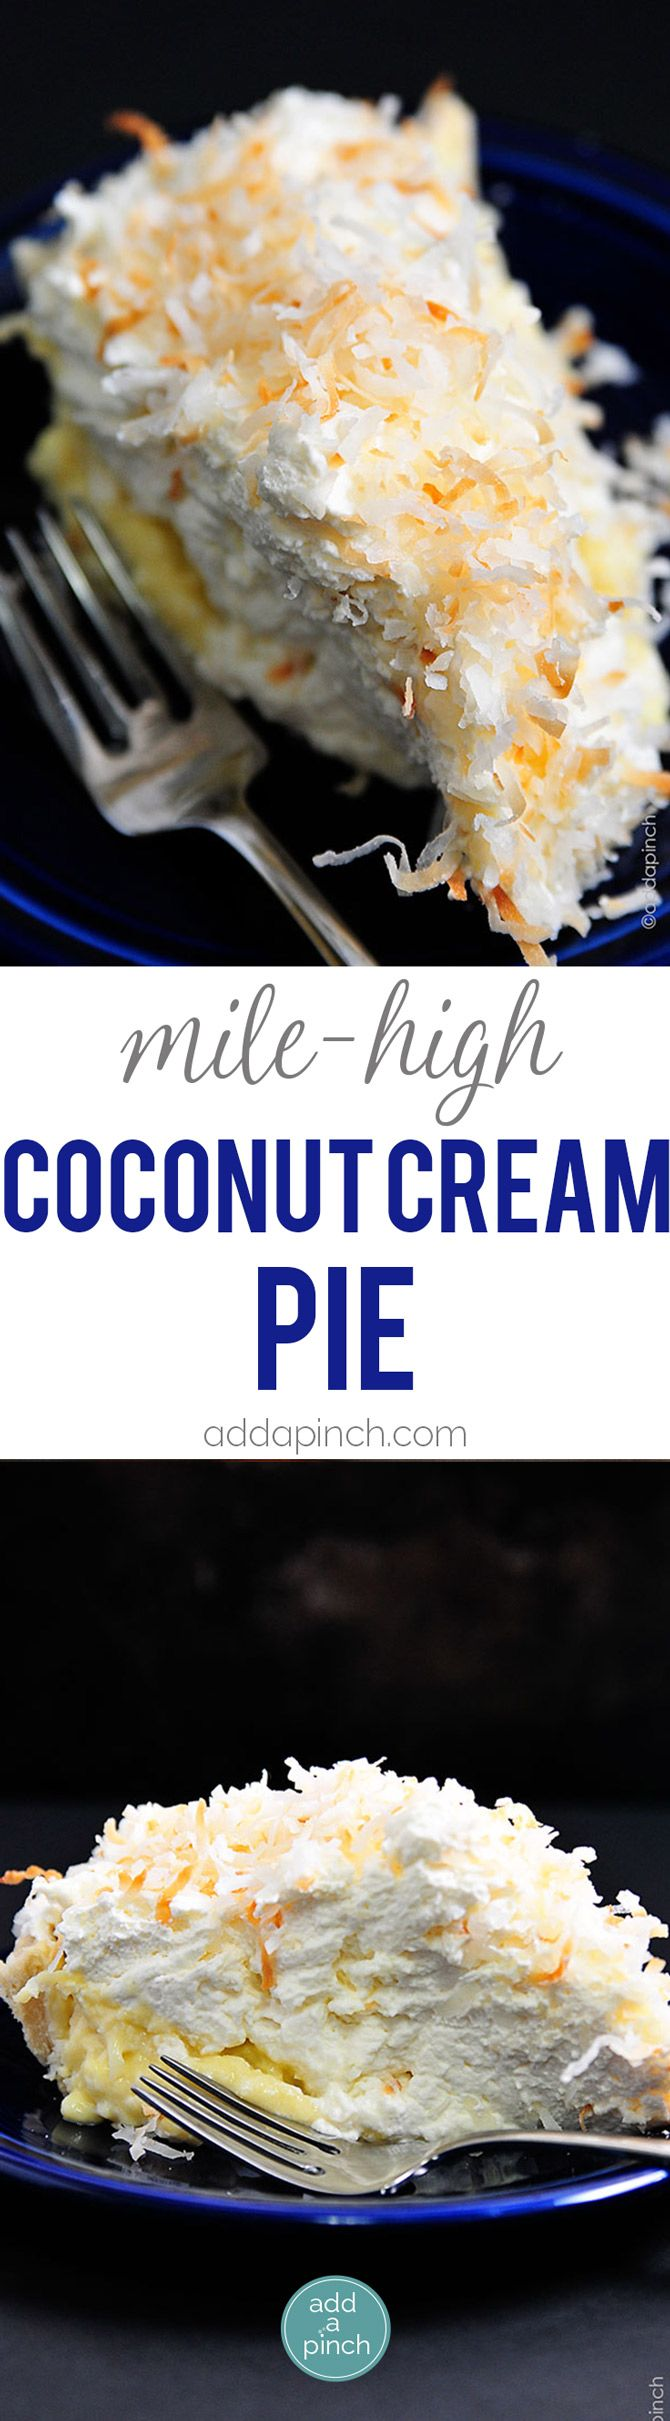 Coconut Cream Pie Recipe - Coconut Cream Pie is a classic. This creamy, dreamy pie recipe will quickly become a family favorite! // addapinch.com